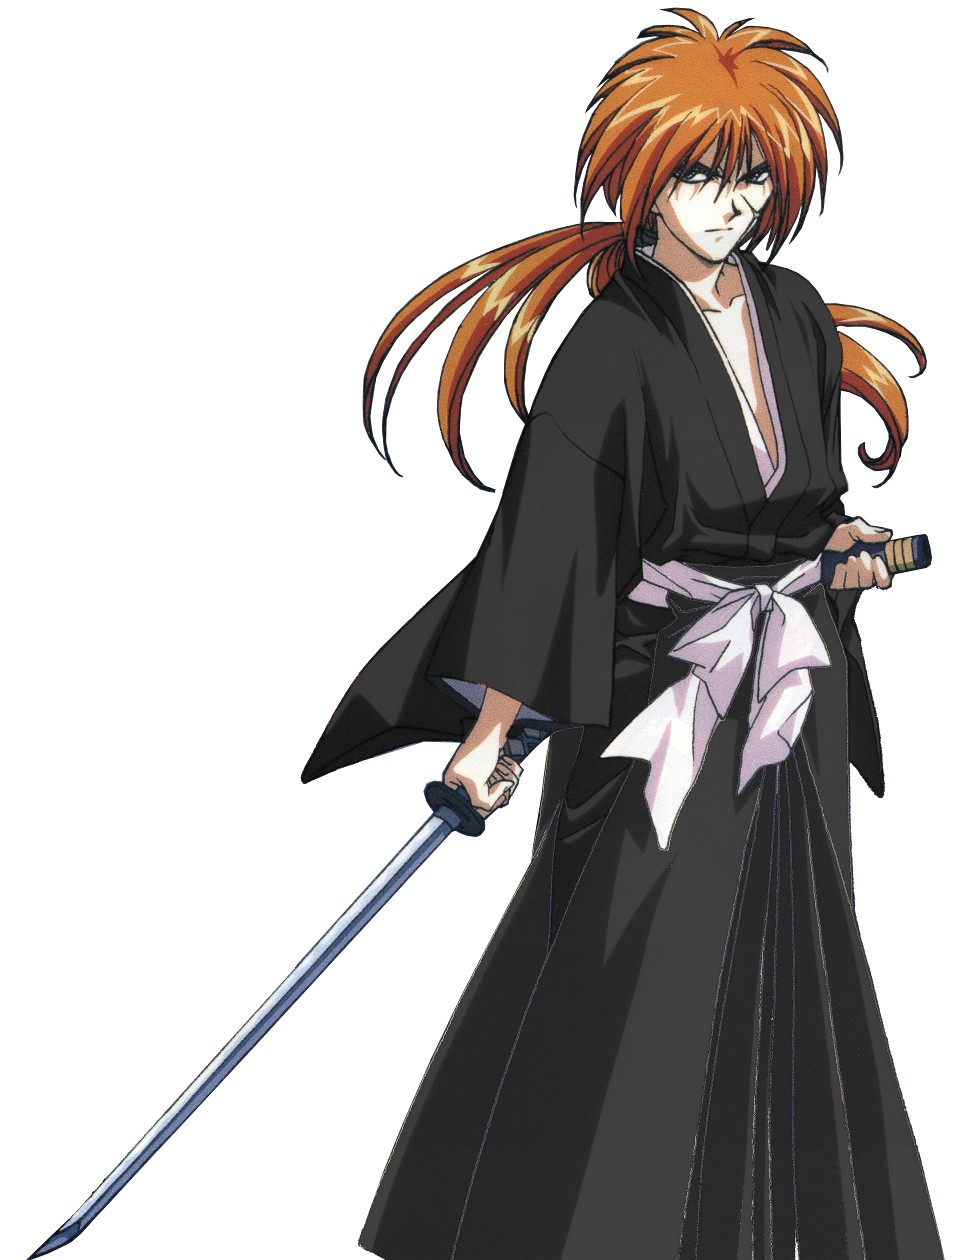 Steckbriefe 1st_div_3rd_st_Kenshin_Himura_by_thomas999